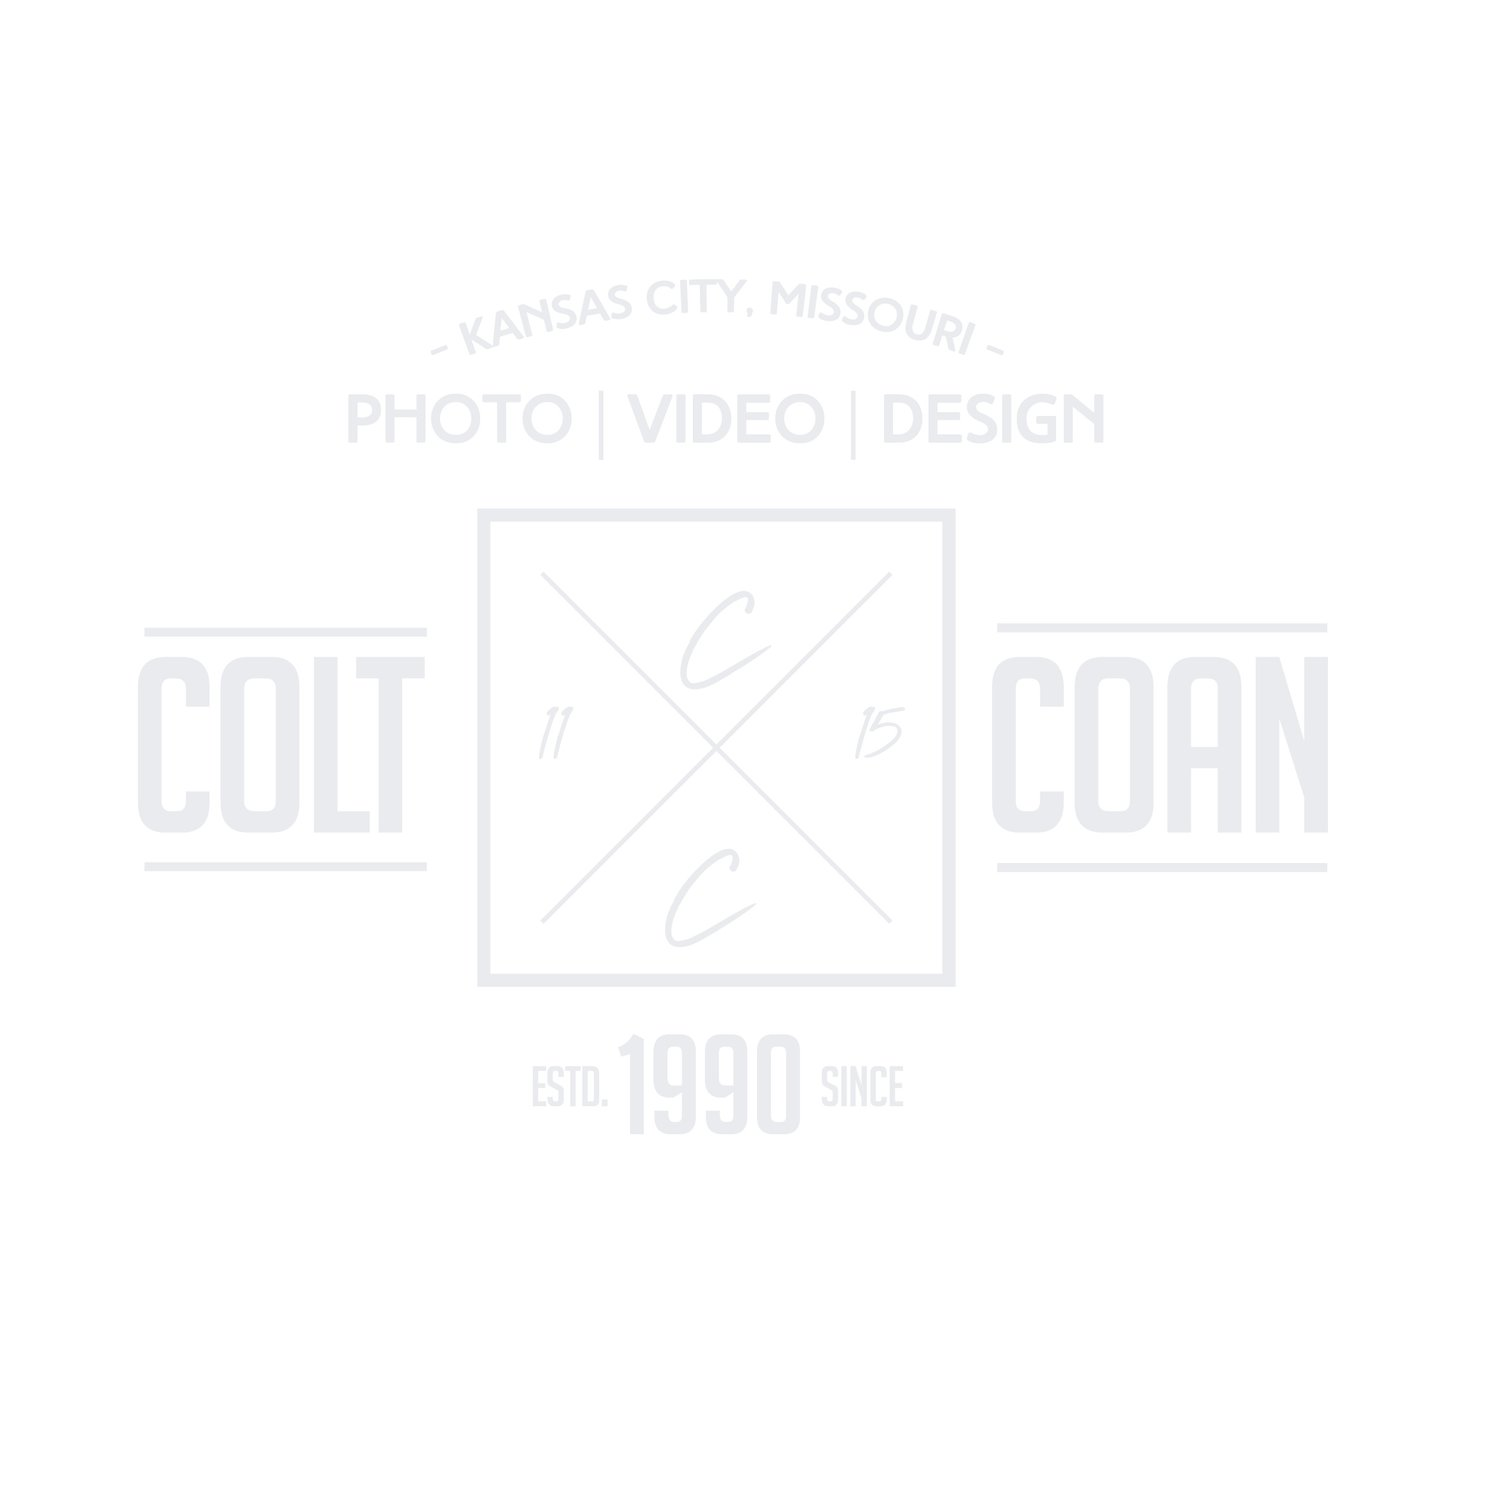 Colt Coan Photography